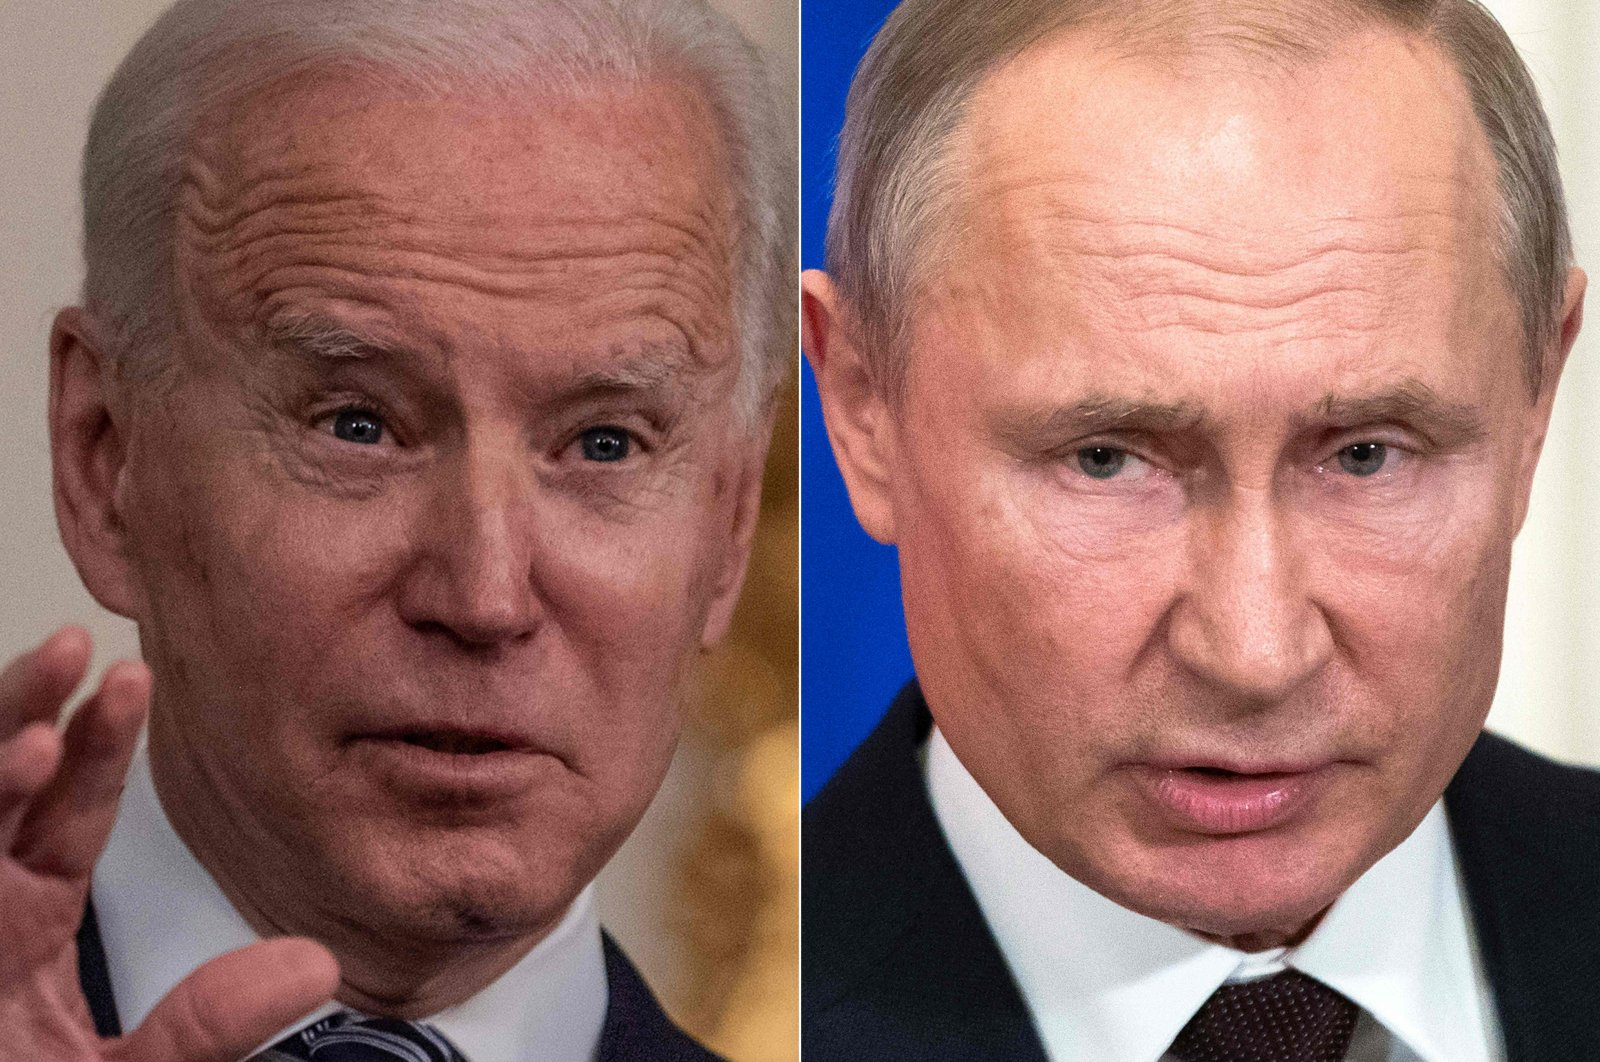 This file combination of pictures created on March 17, 2021 shows U.S. President Joe Biden (L) during remarks on the implementation of the American Rescue Plan in the State Dining room of the White House in Washington, D.C., U.S., on March 15, 2021, and Russian President Vladimir Putin as he and his Turkish counterpart hold a joint press statement following their talks at the Kremlin in Moscow, Russia, on March 5, 2020. (Photos from AFP)